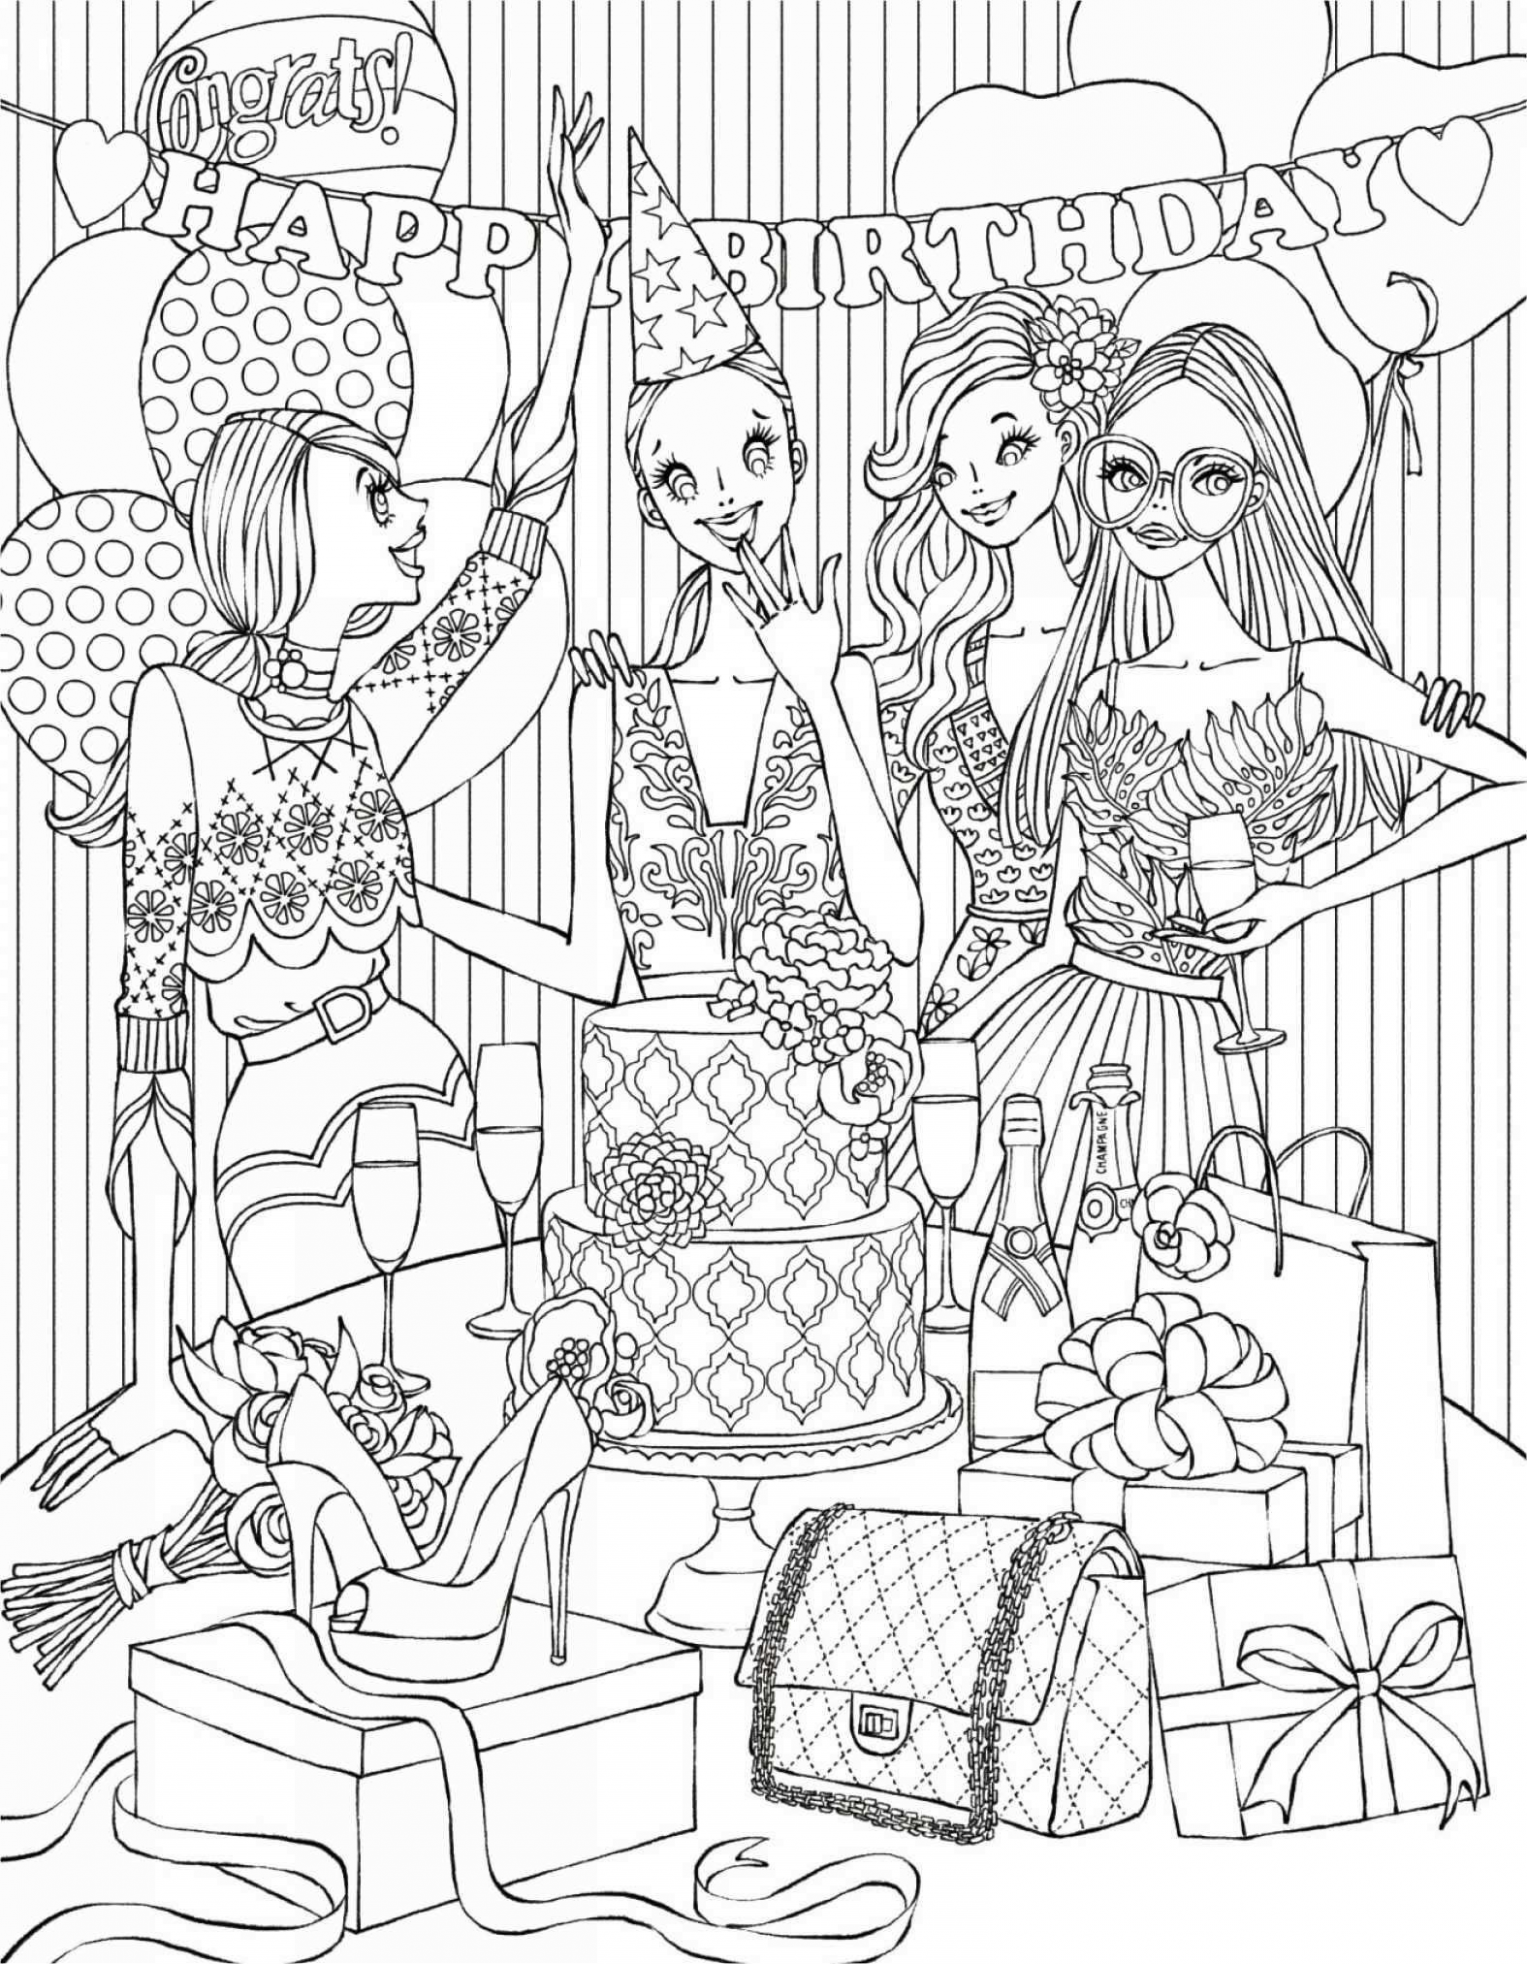 Scooby Doo Coloring Pages Free Unique Christmas Coloring Pages Grade ..